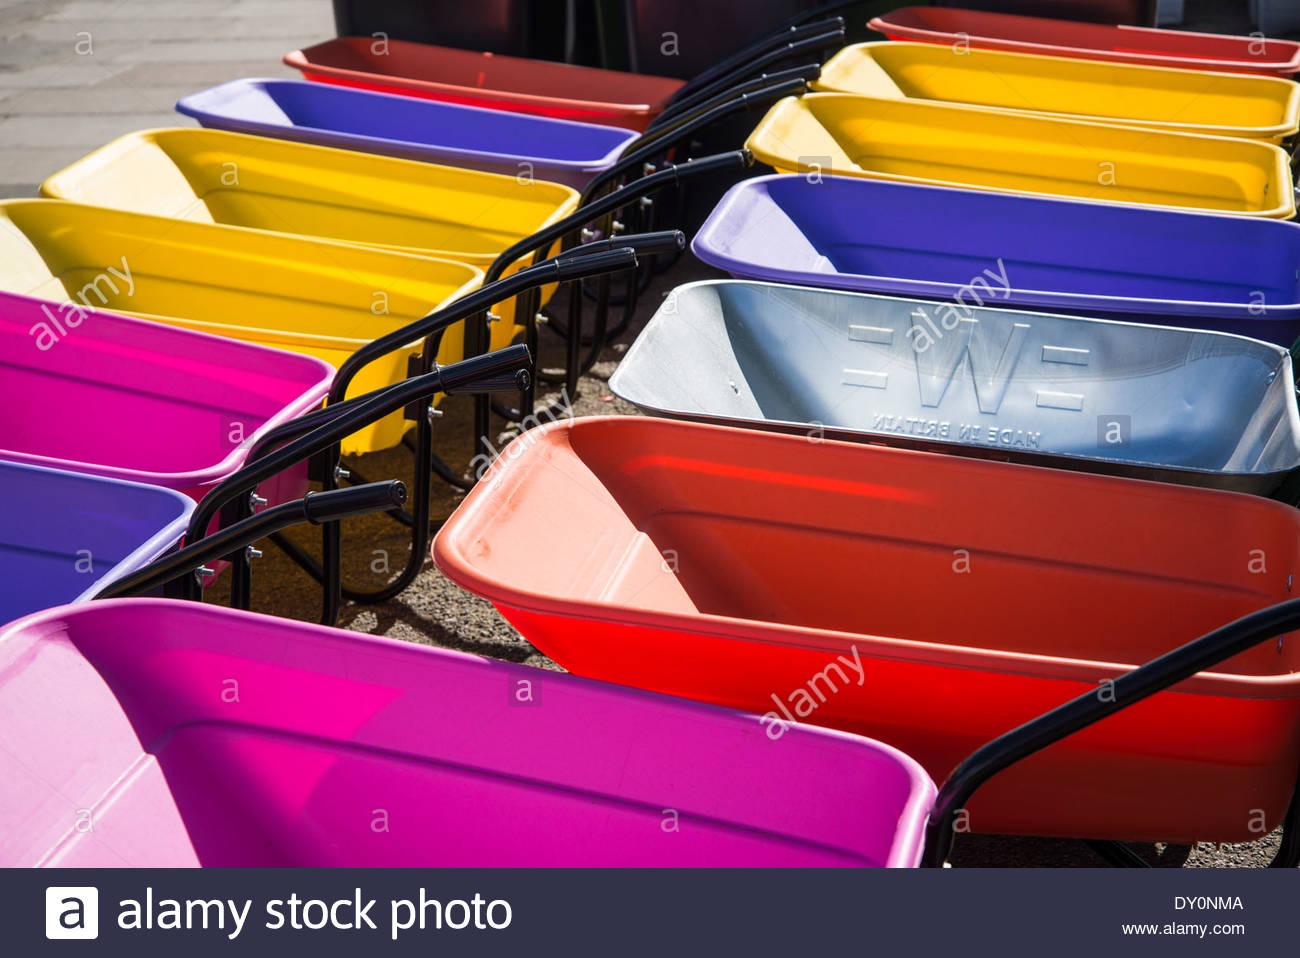 Colourful wheelbarrows - Stock Image